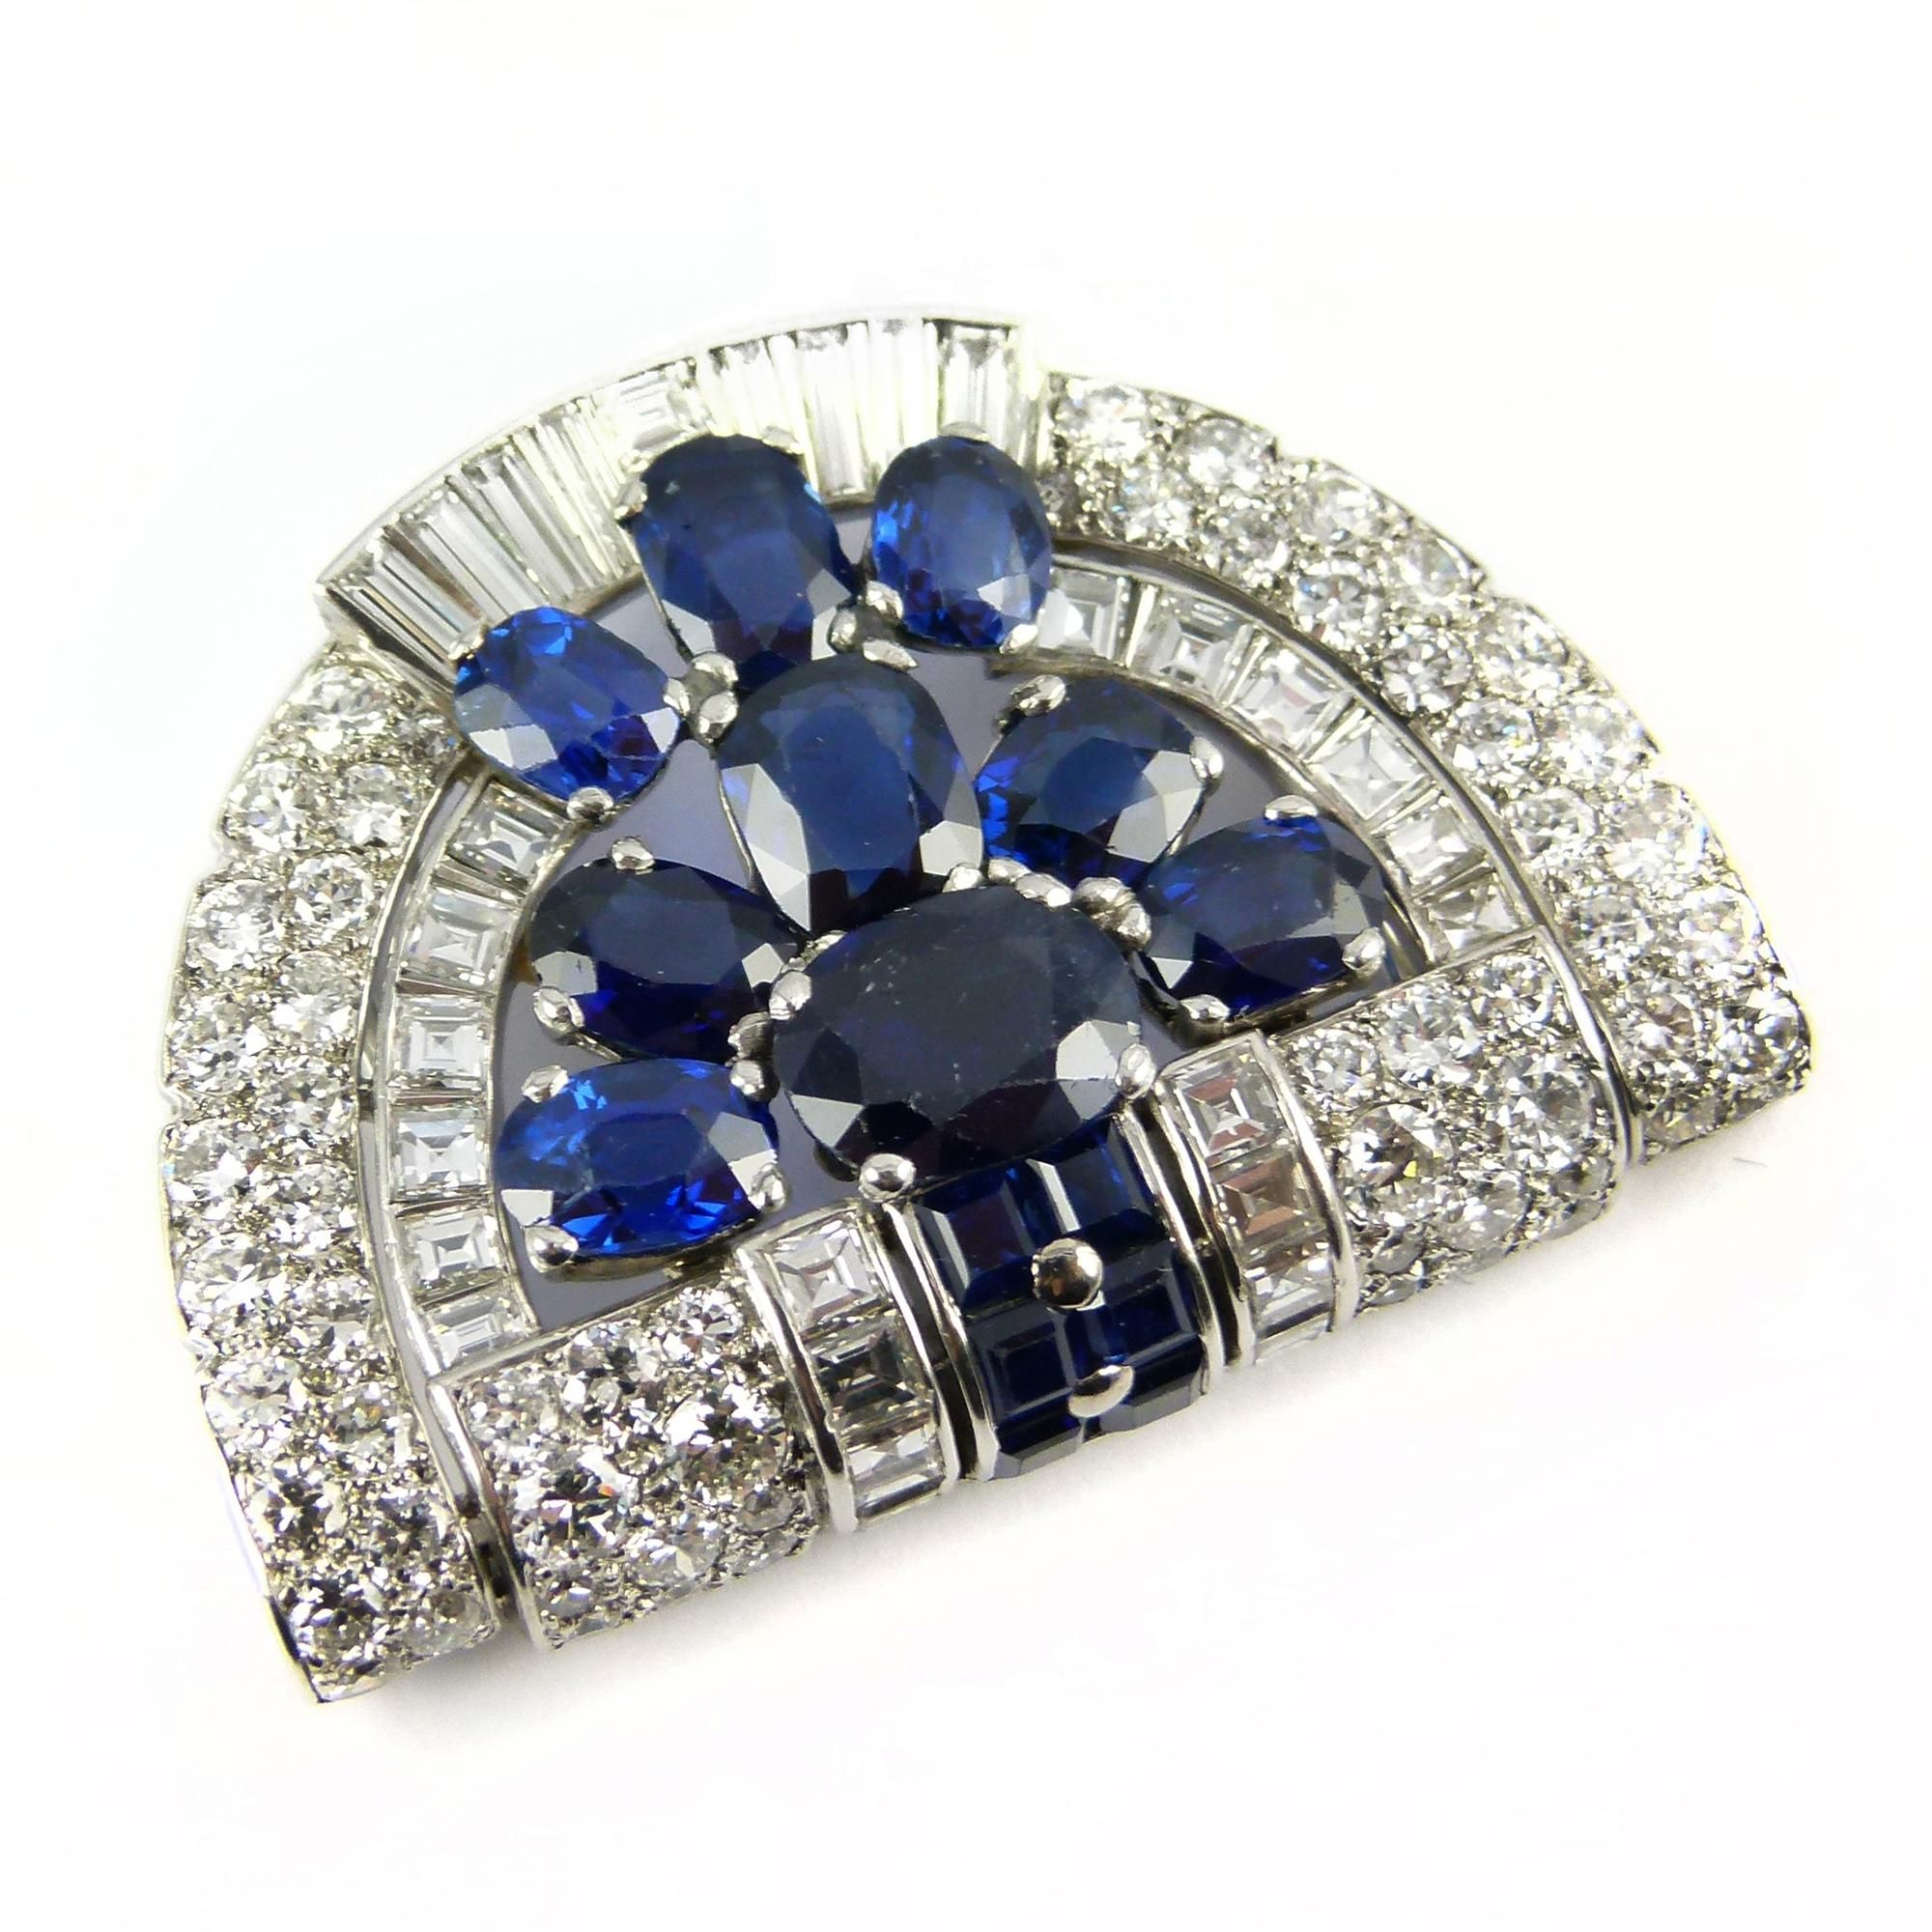 christie and lot sapphire cartier ring s diamond jewelry gnv lotfinder details